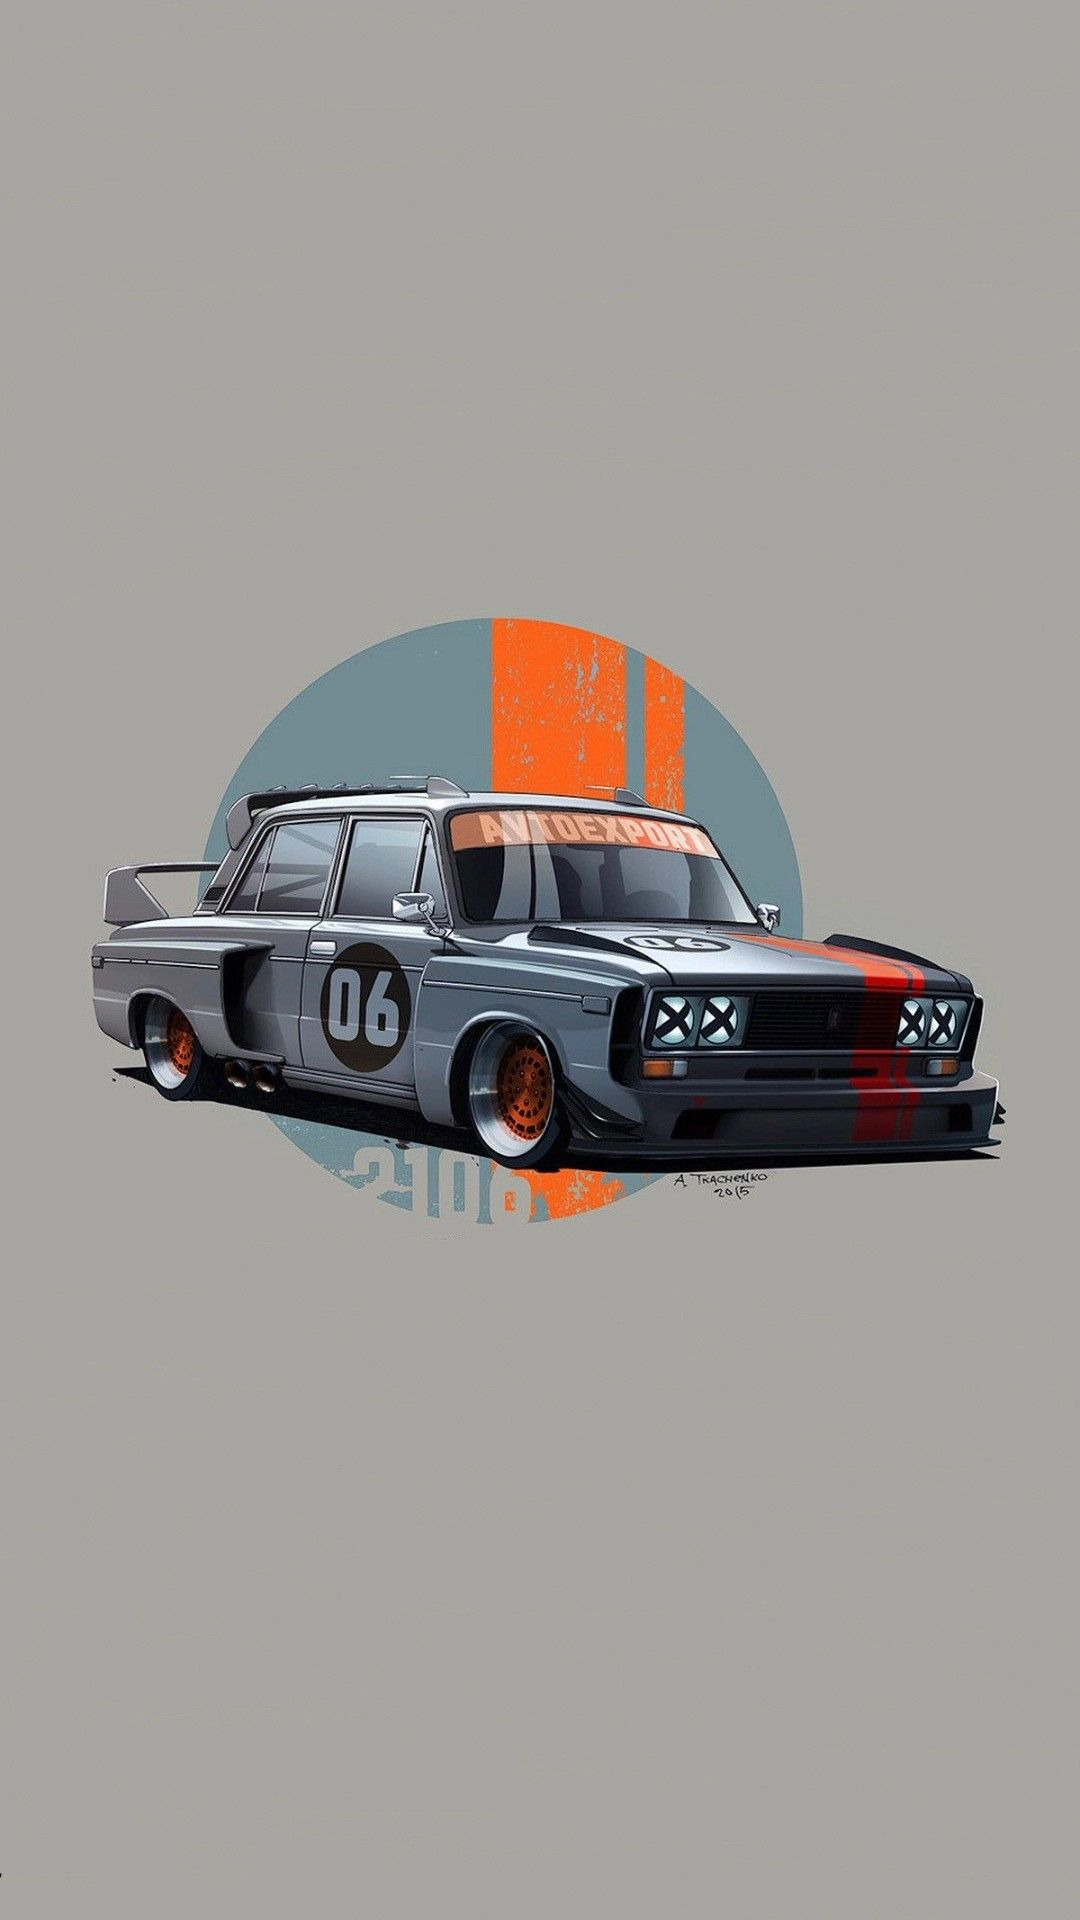 It looks like russian car lada MERCEDES BENZ Pinterest